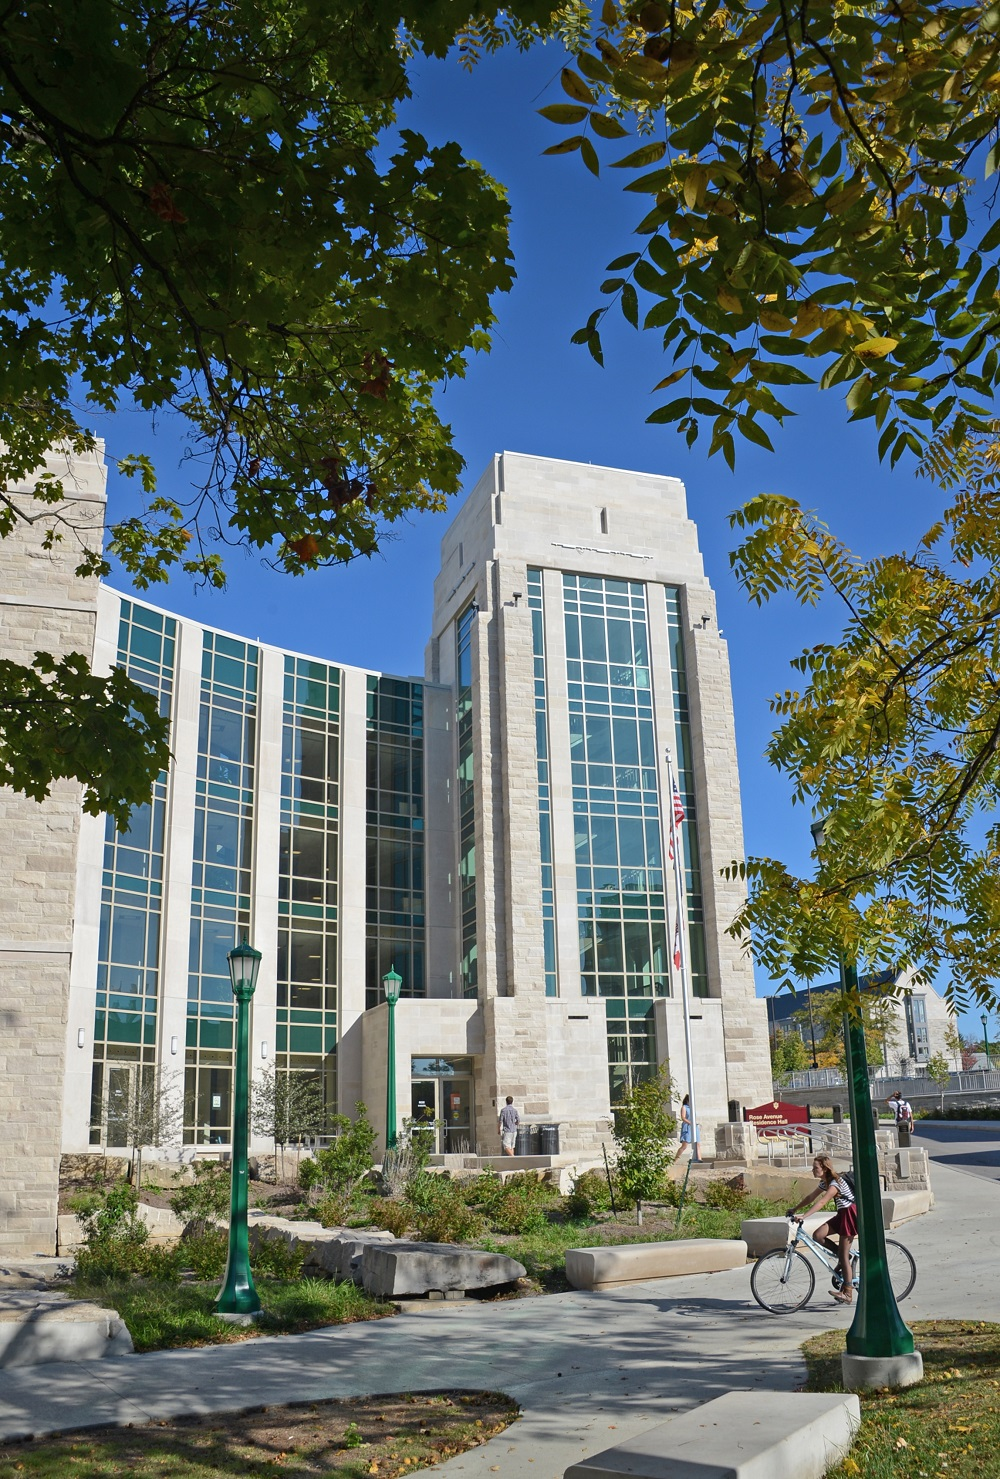 Indiana University – Rose Residence Center